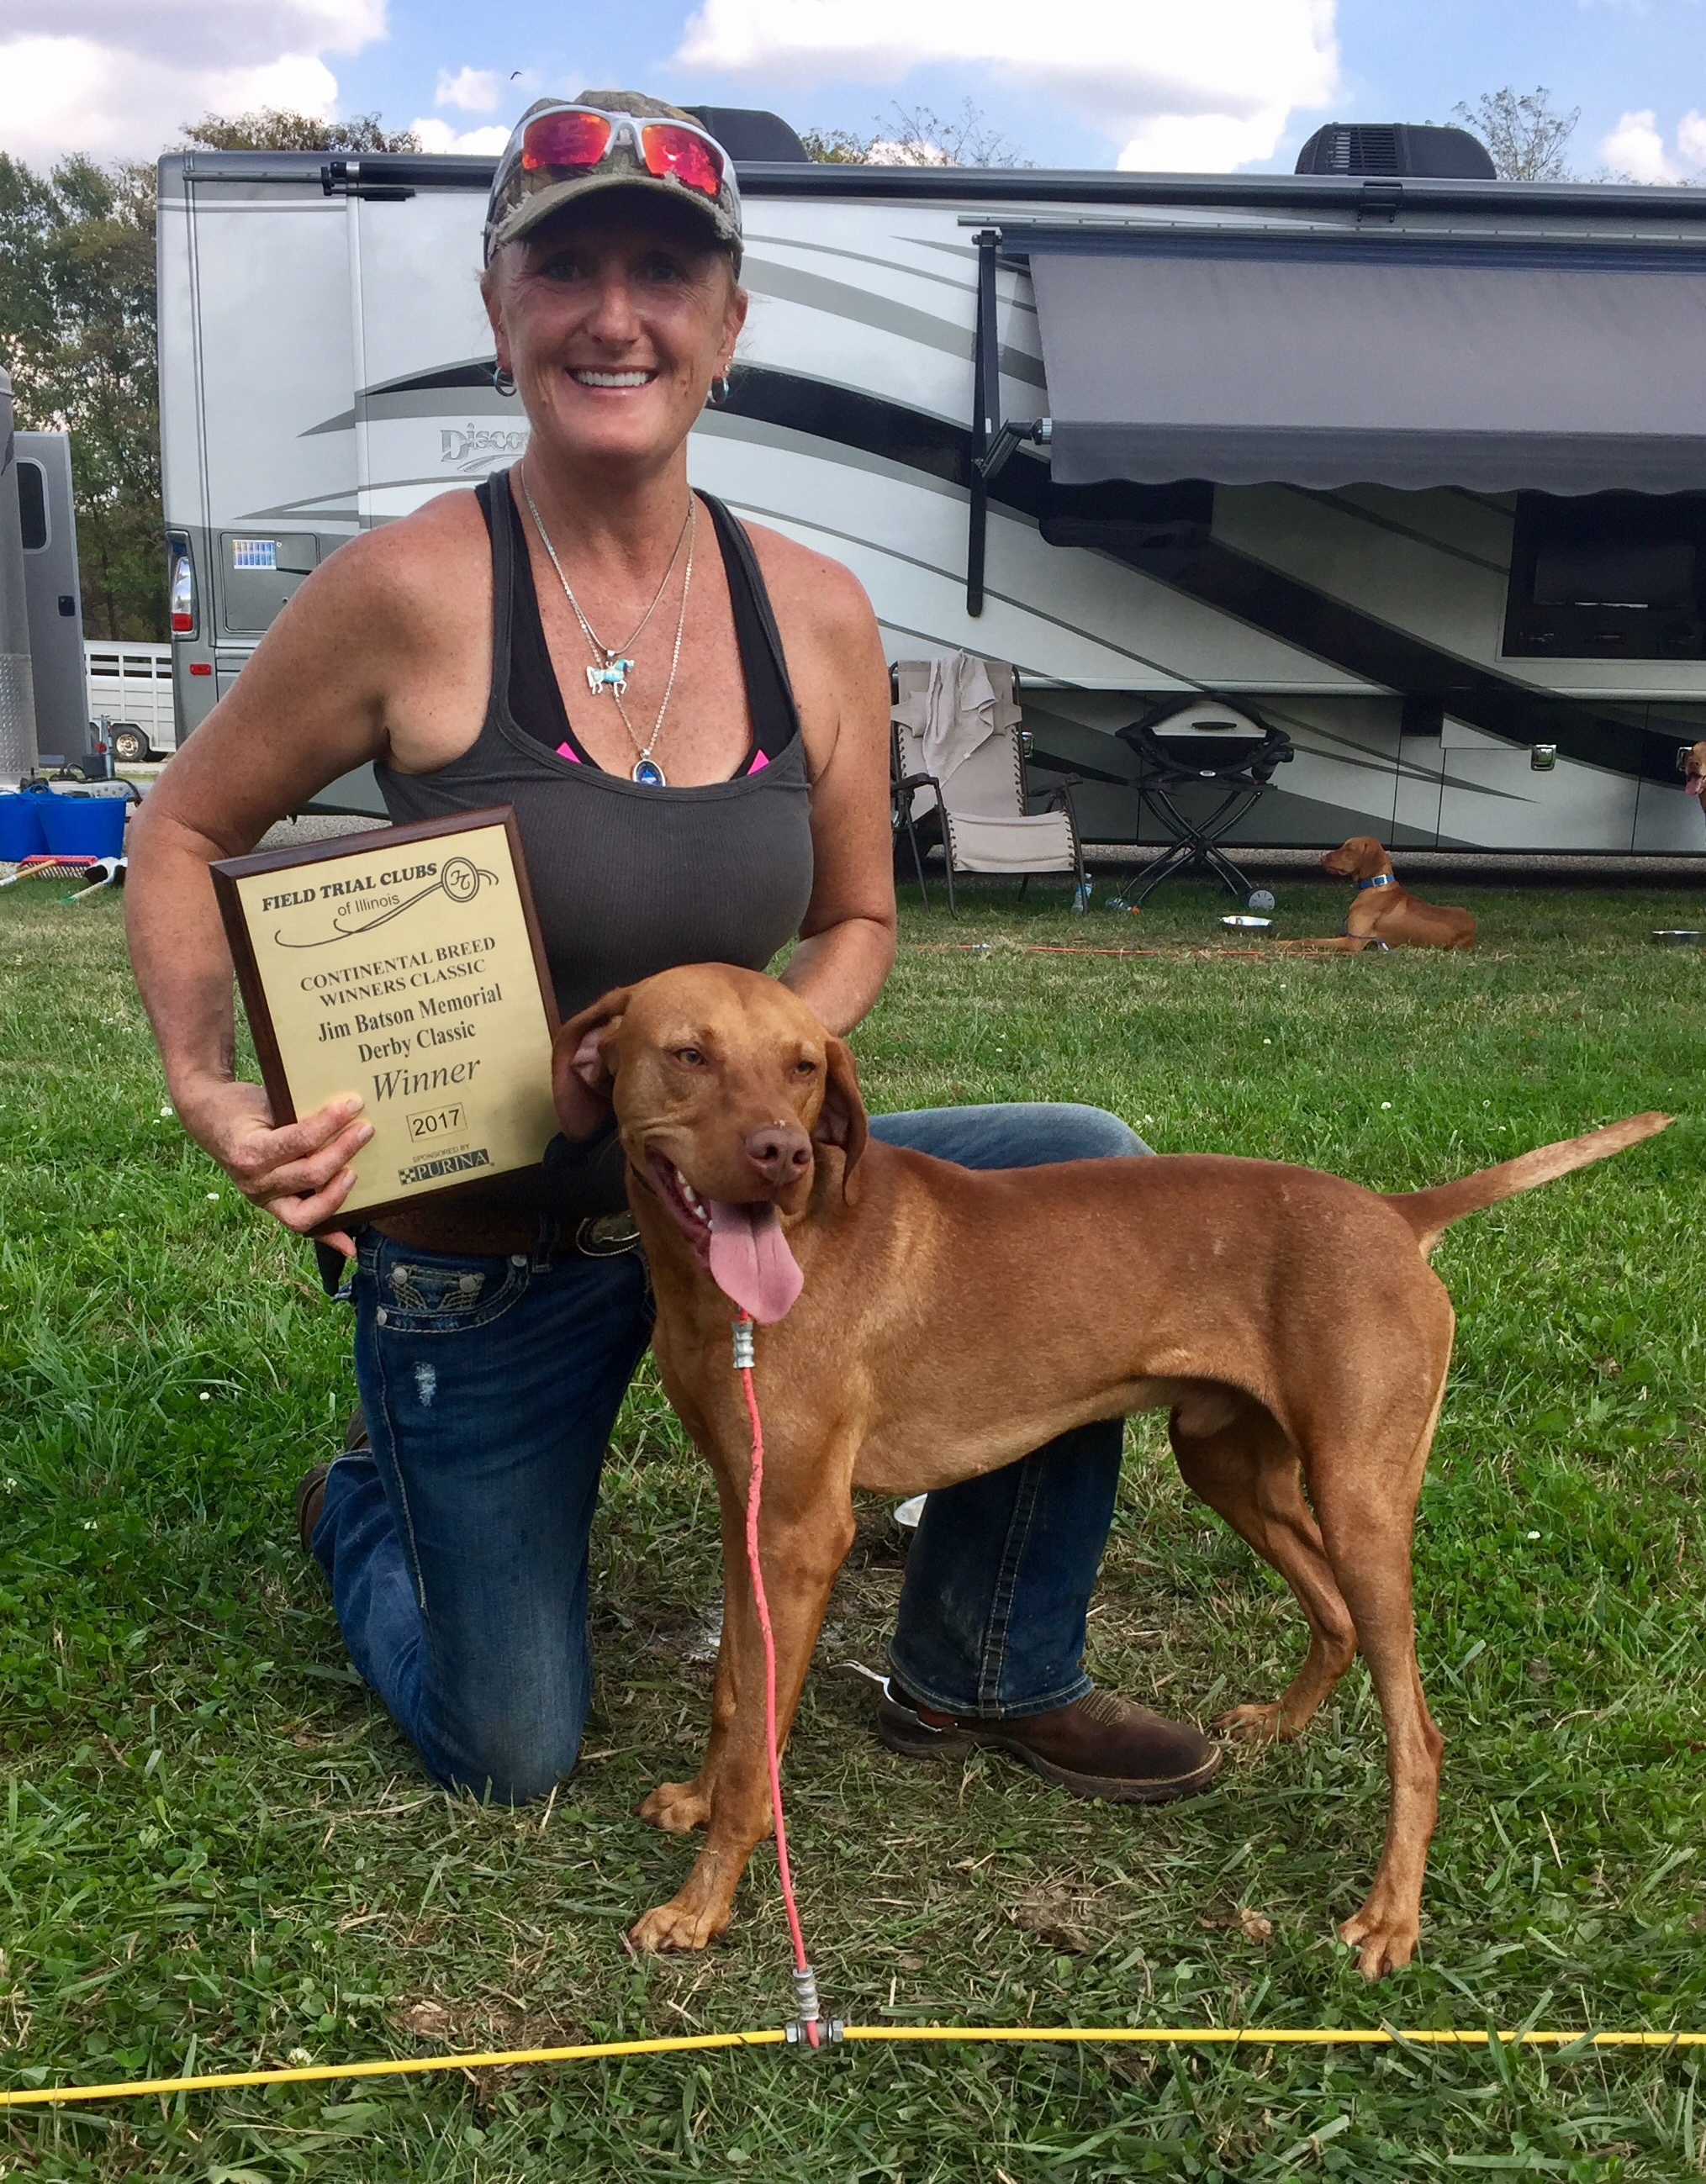 2017 continental breed derby classic duke